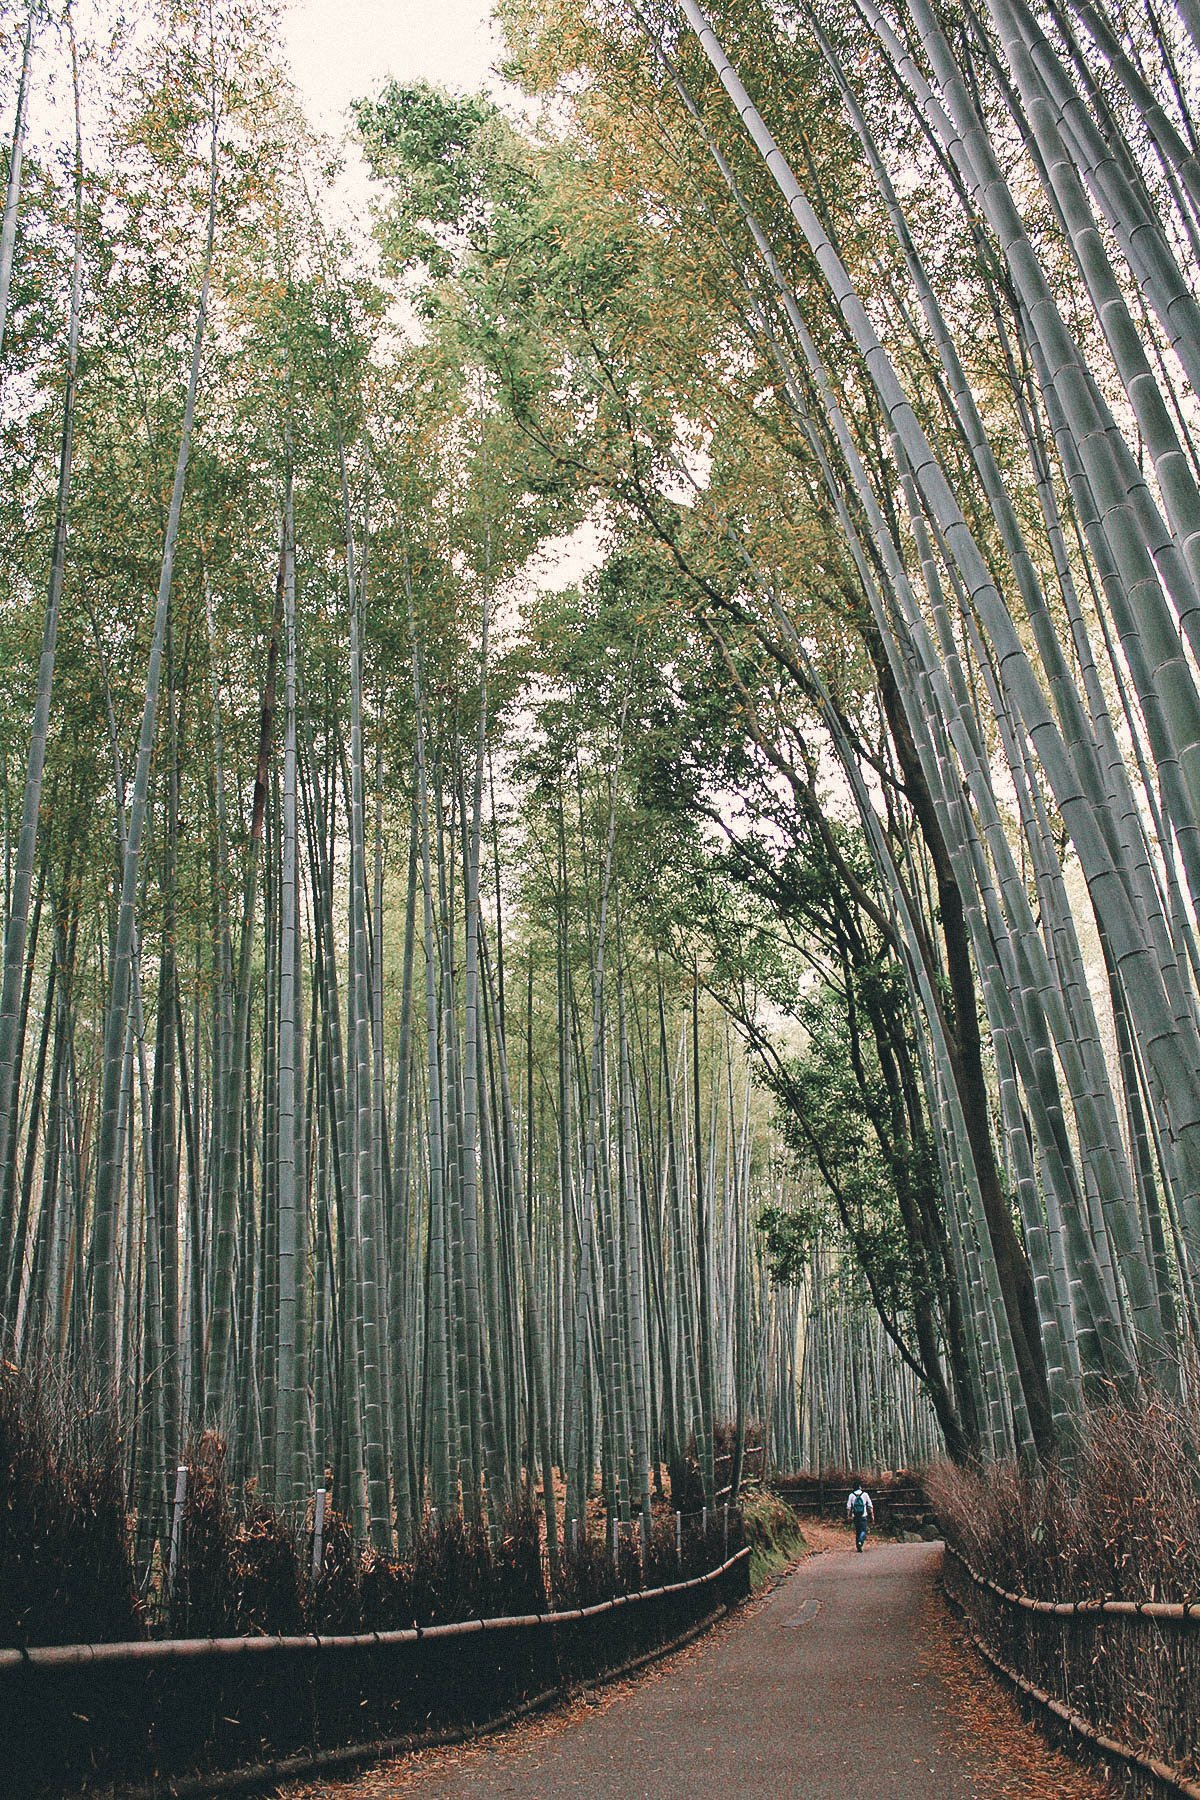 Arashiyama Bamboo Groves, Kyoto, Japan